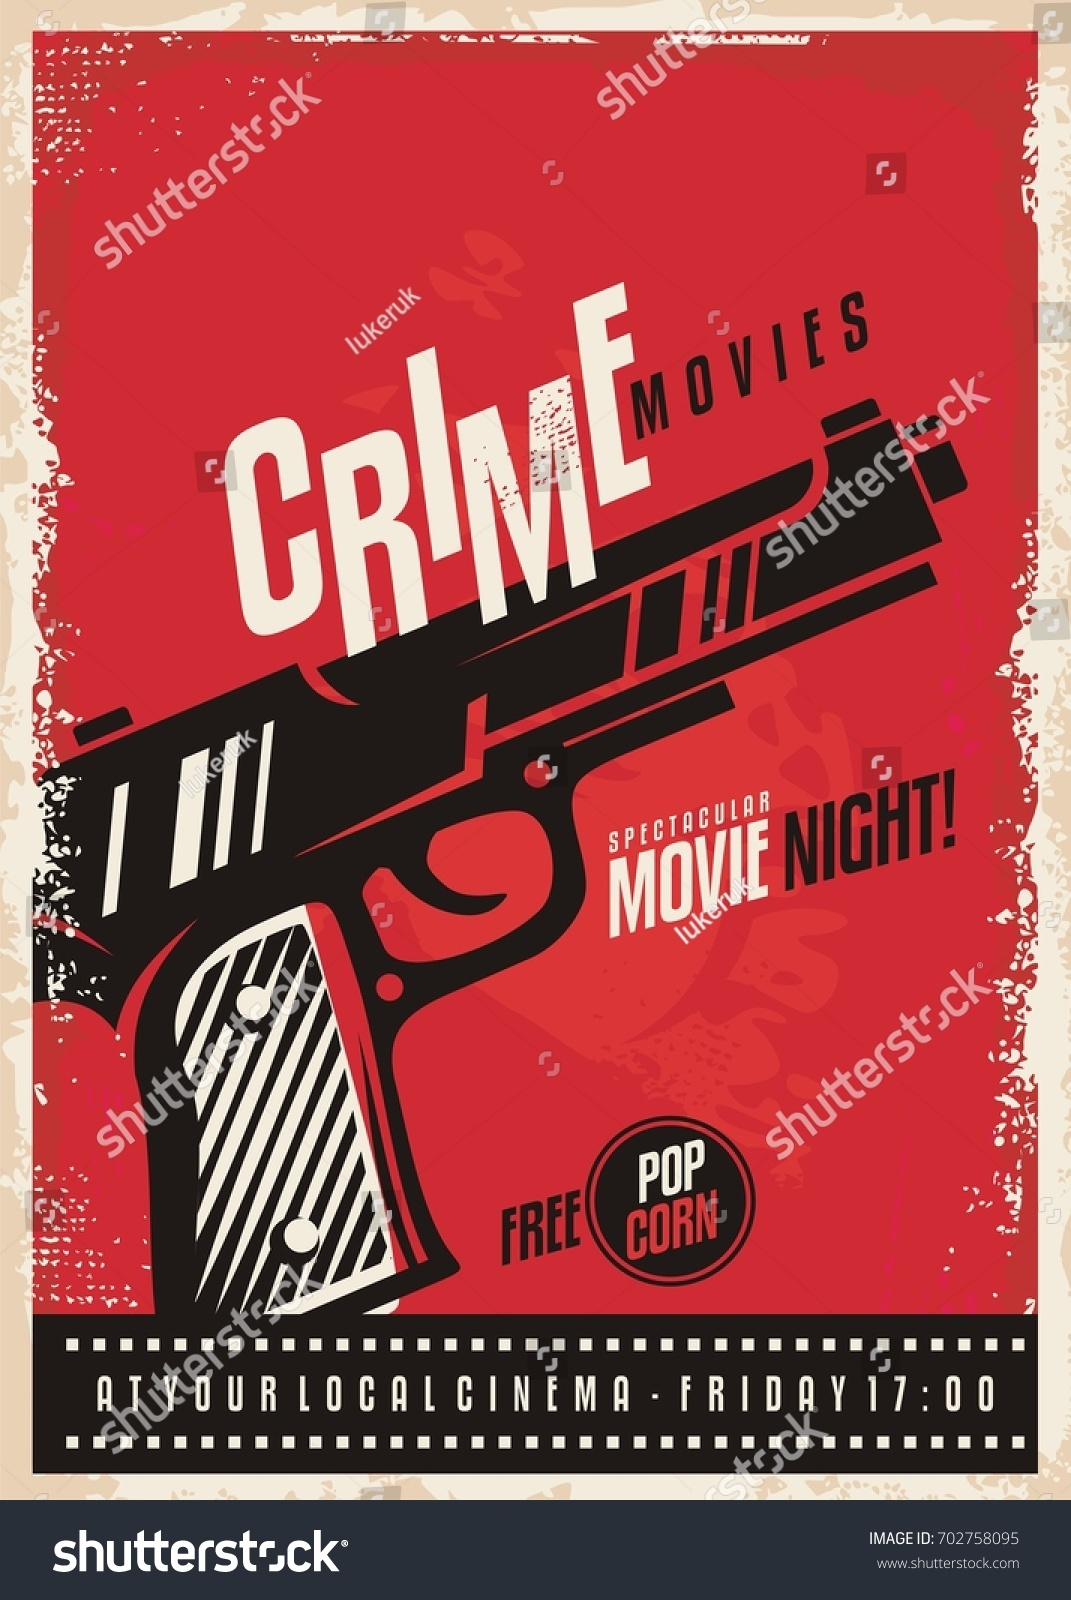 Design a movie poster free